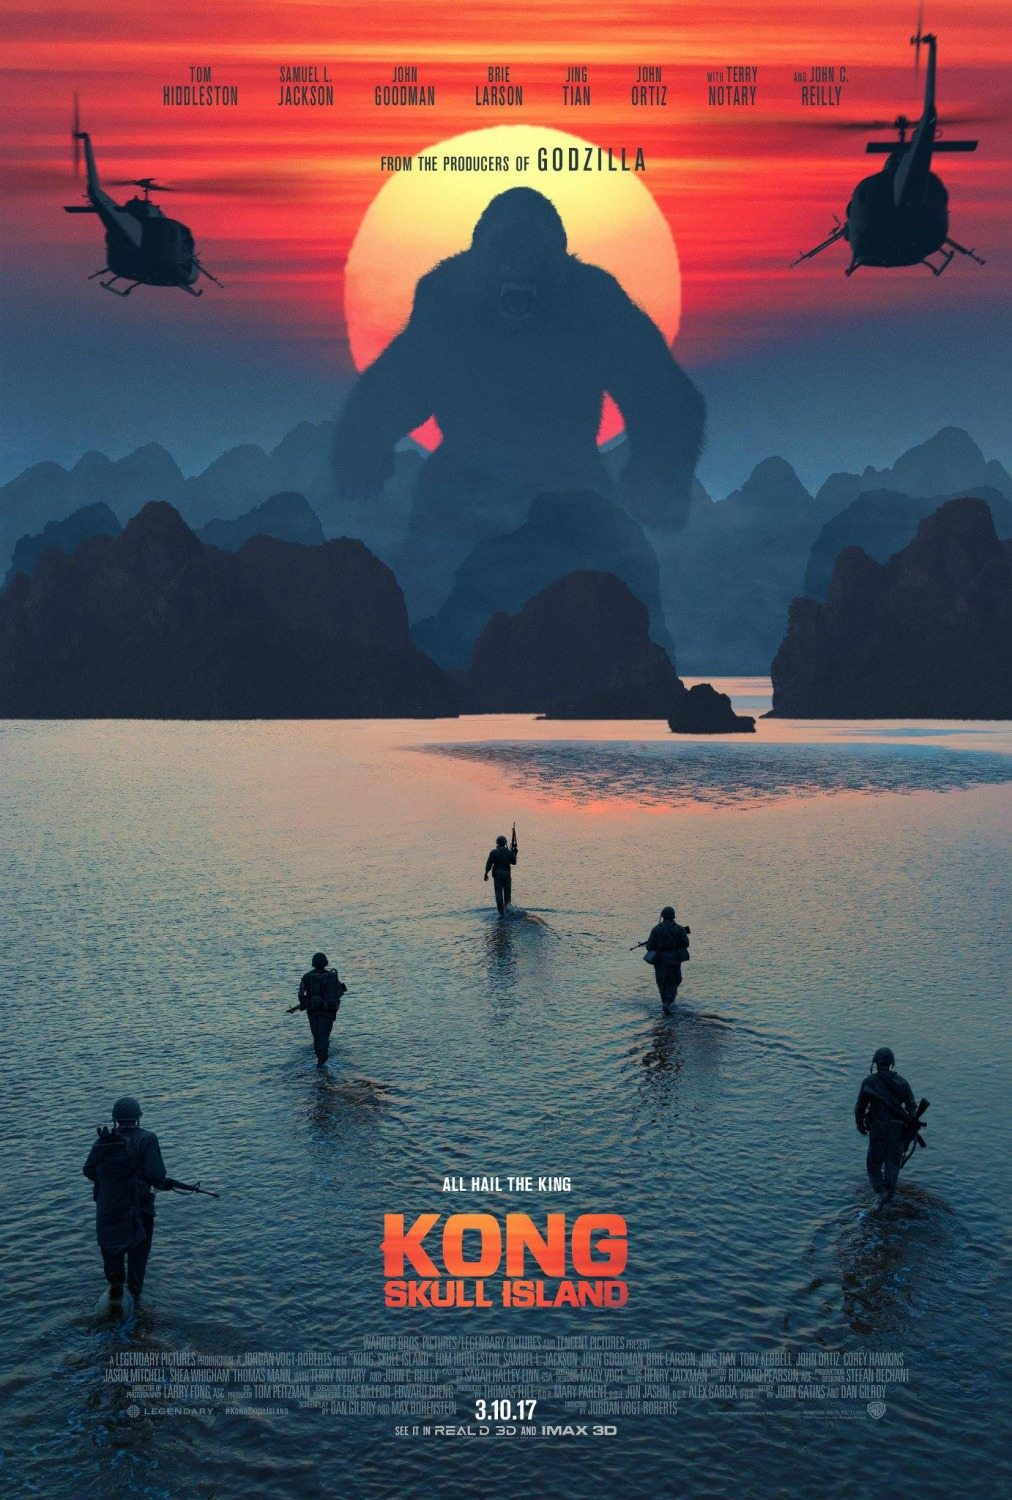 http://i1.wp.com/www.dreadcentral.com/wp-content/uploads/2016/11/kong-skull-island-poster-1.jpg?w=1012